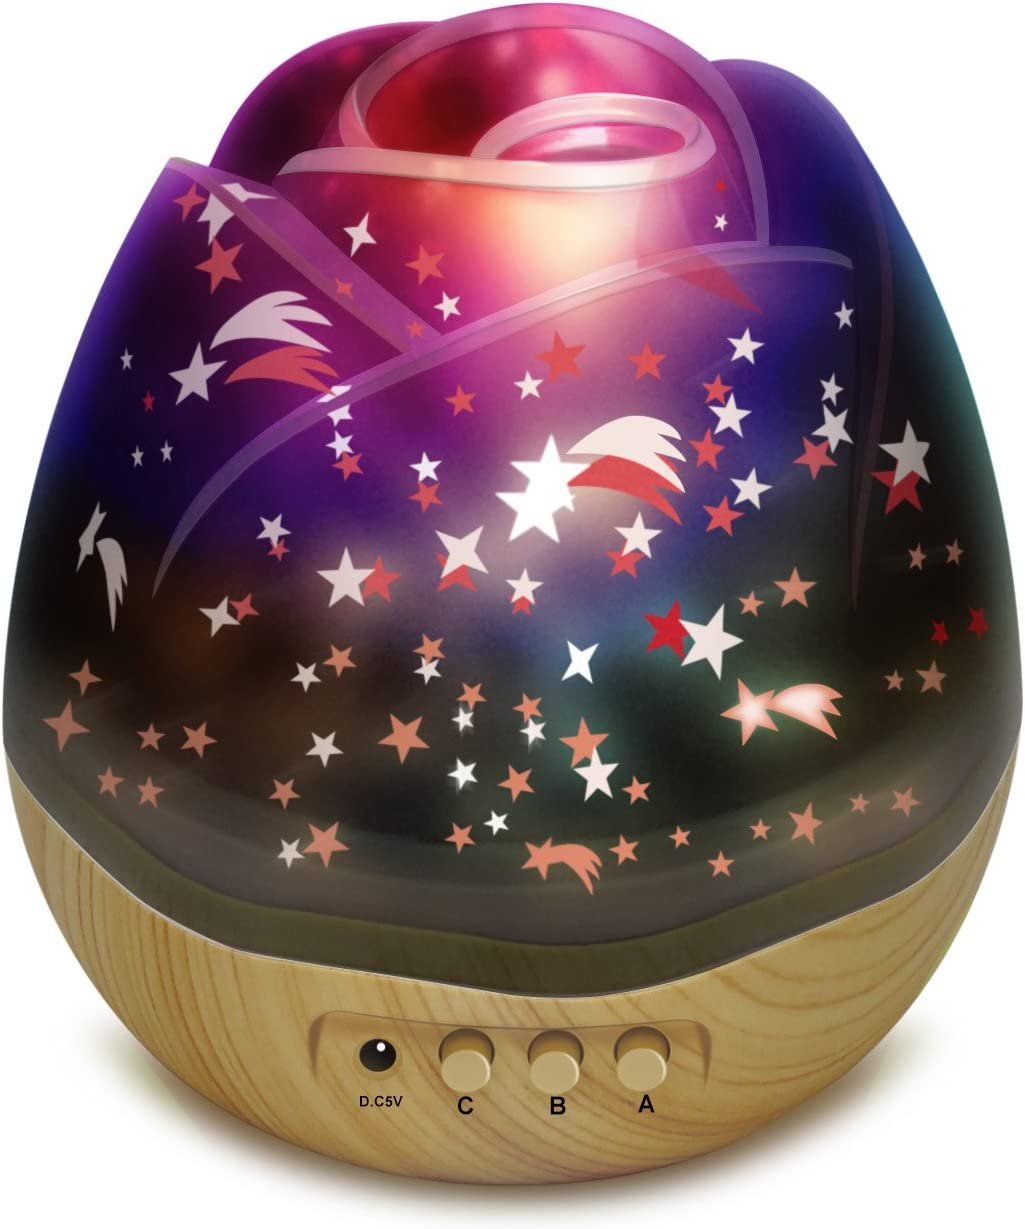 SCOPOW Star Night Light Projector with 360 Degree Rotating for Baby